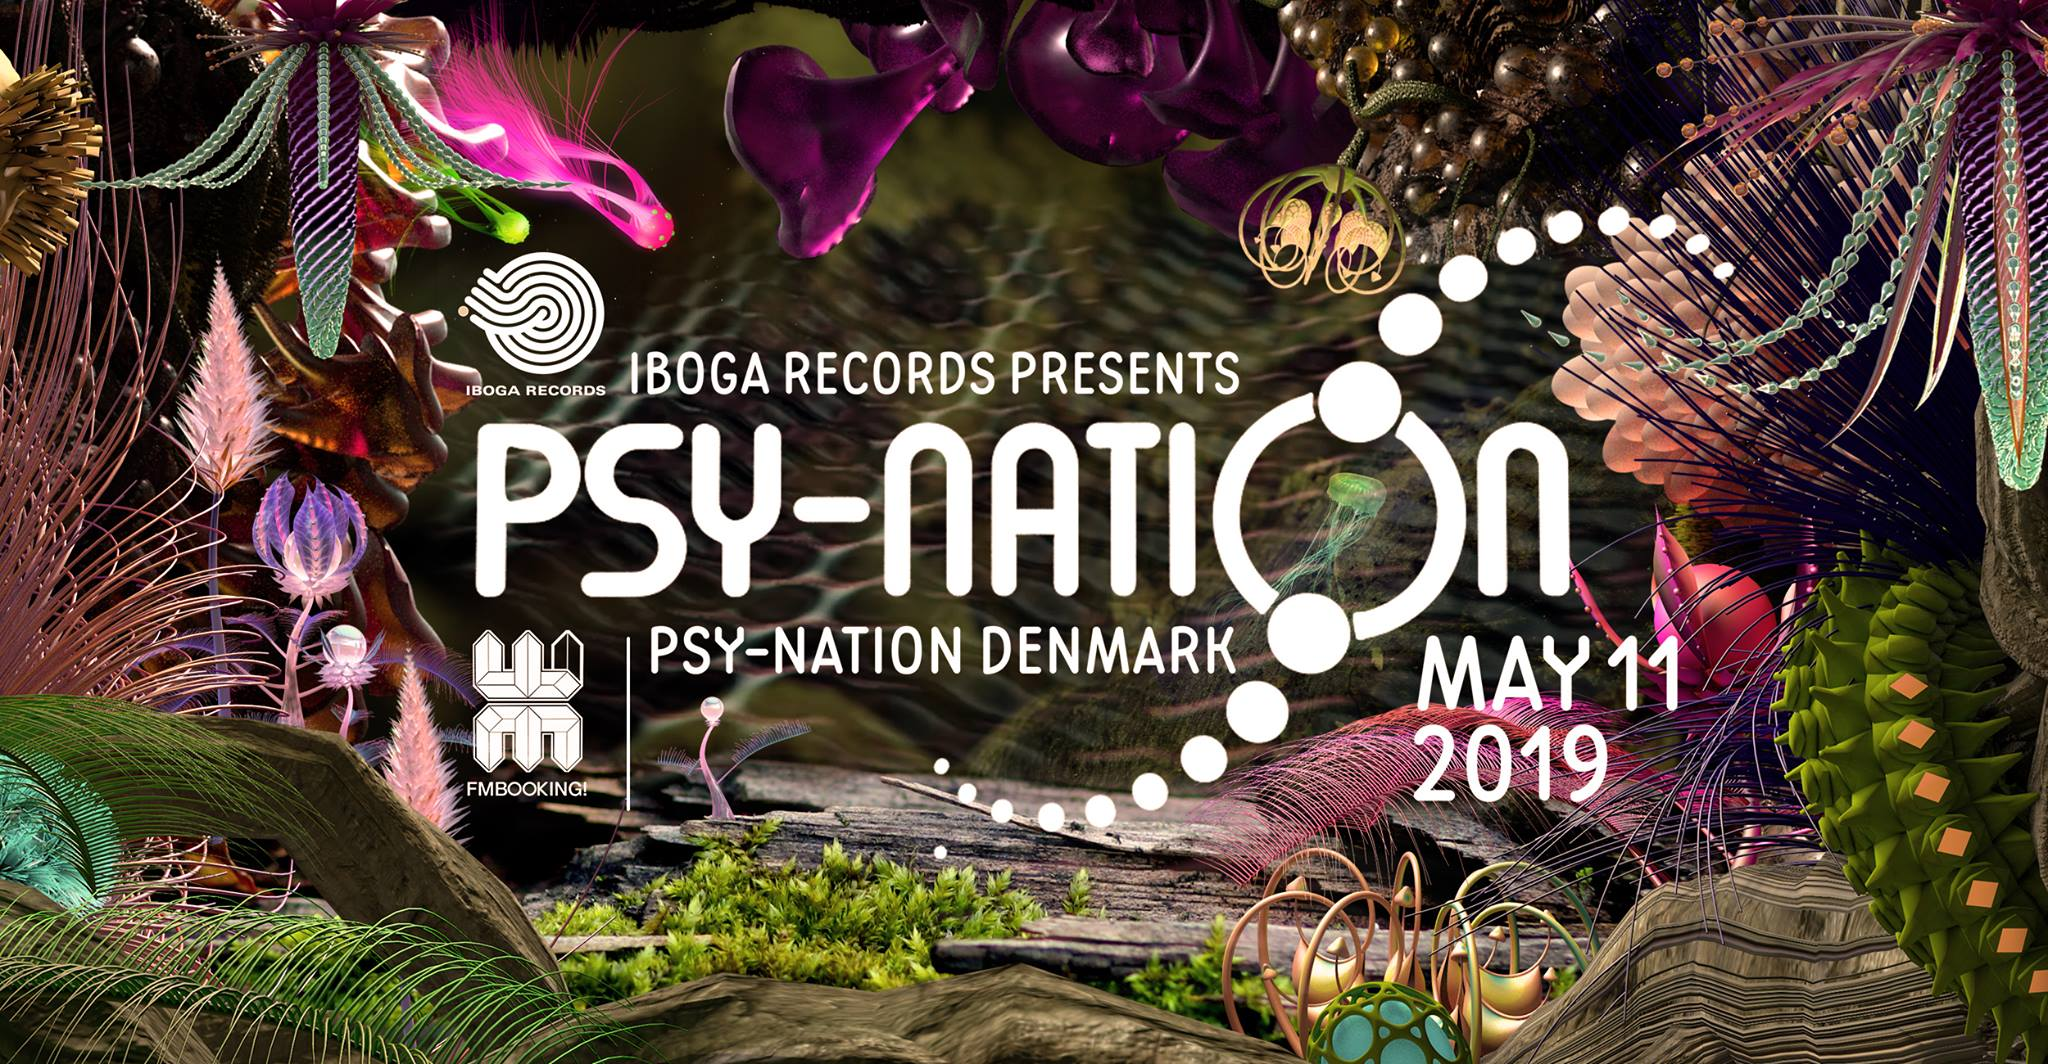 Psy-Nation Denmark